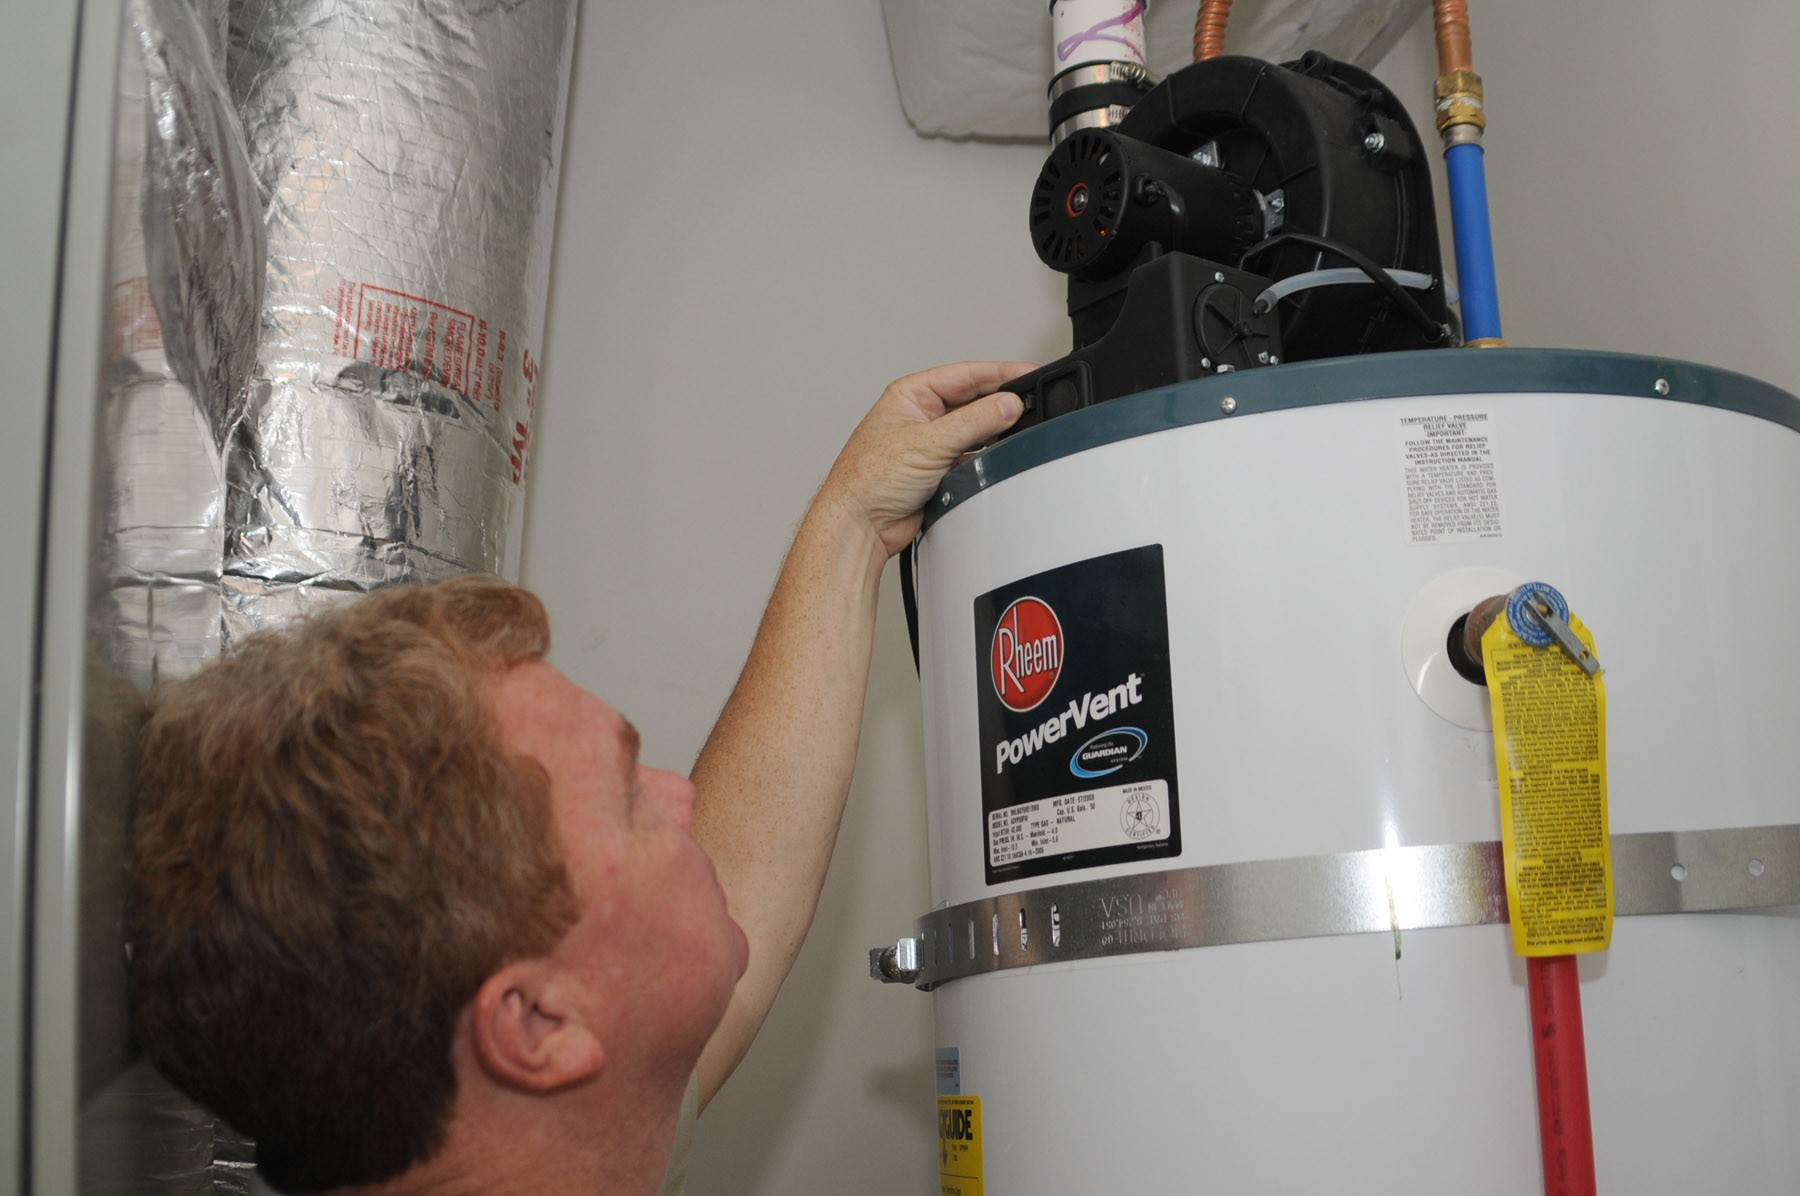 Cape Coral Water Heater Replacement Experts, Water Heater Installation, Water Heaters, expansion tanks-6-We do Water Heater Installation and Repair, Natural Gas Water Heaters, 24/7 Emergency Water Heater Service and Maintenance, Hybrid Water Heaters, Water Heater Expansion Tank, Commercial Water Heater Services, Tankless Water Heaters Installations, and more